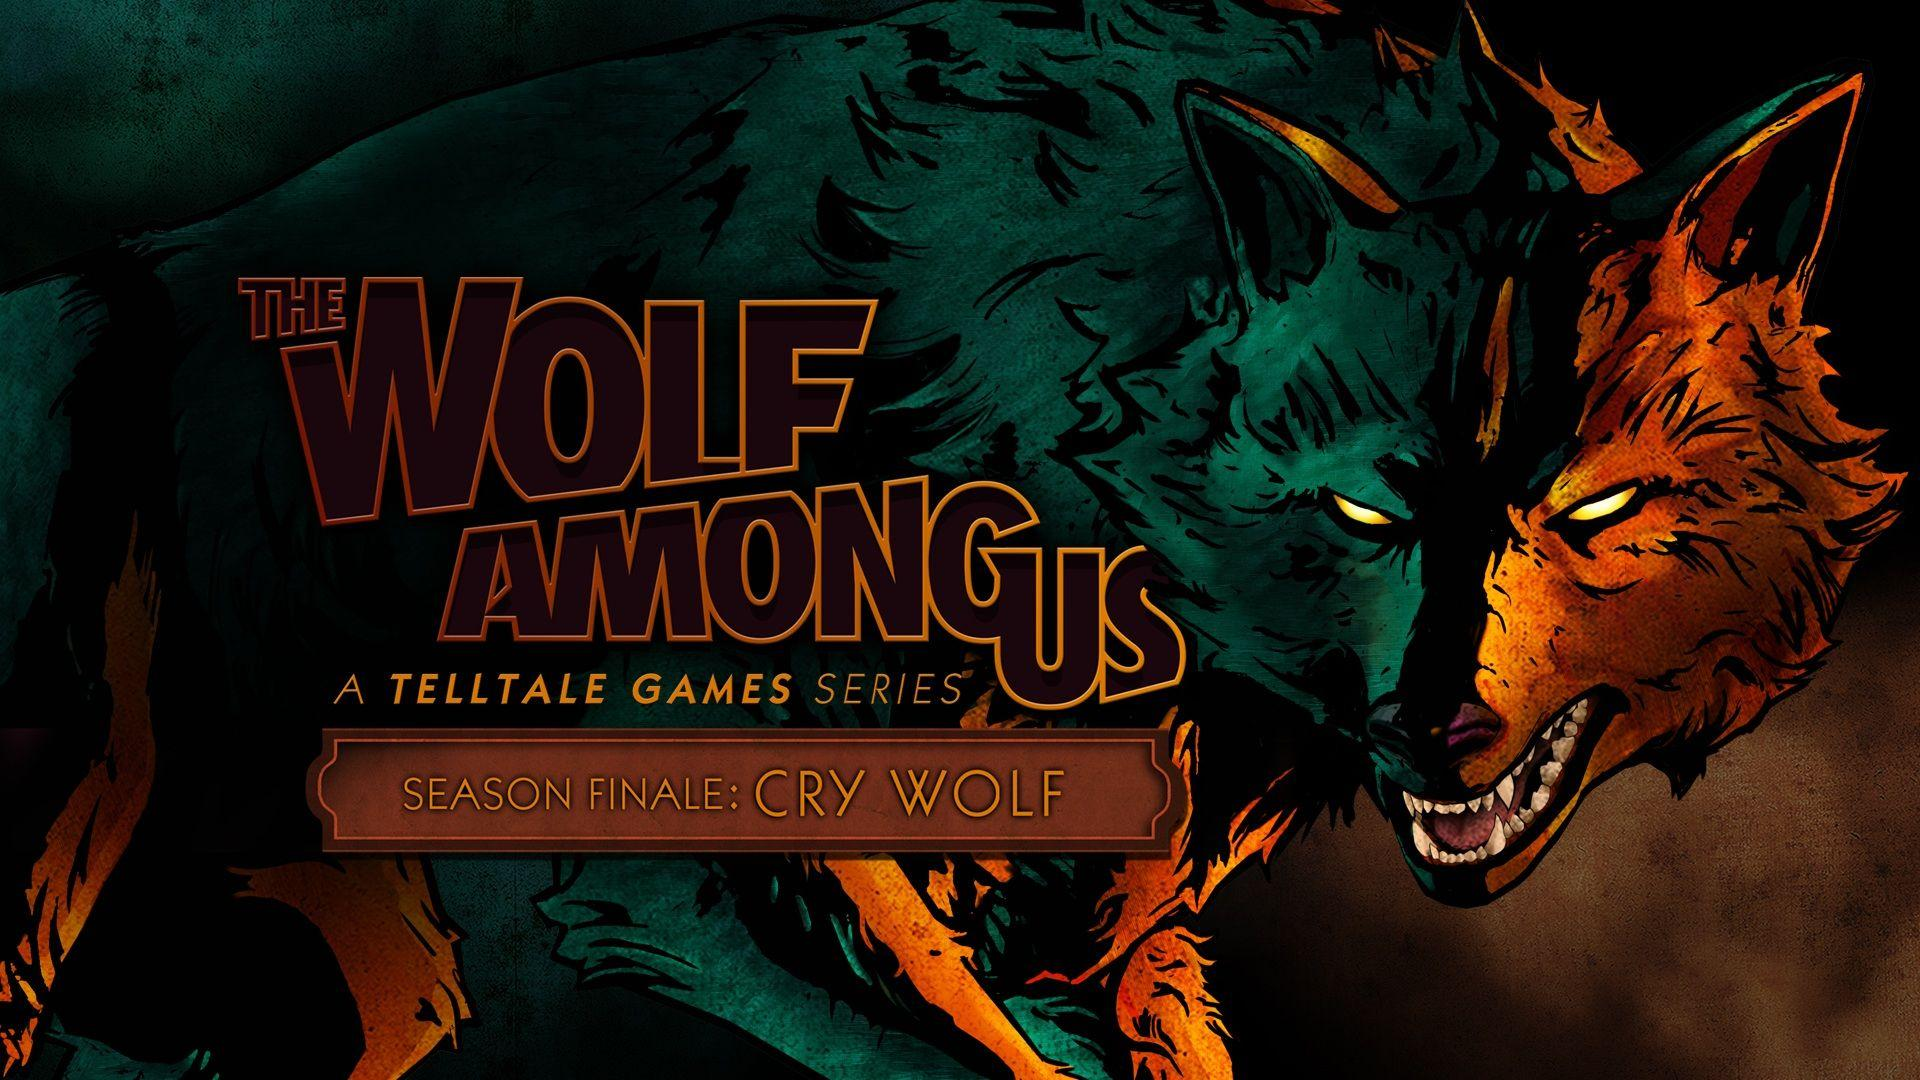 Wallpapers Wallpapers from The Wolf Among Us: A Telltale Games